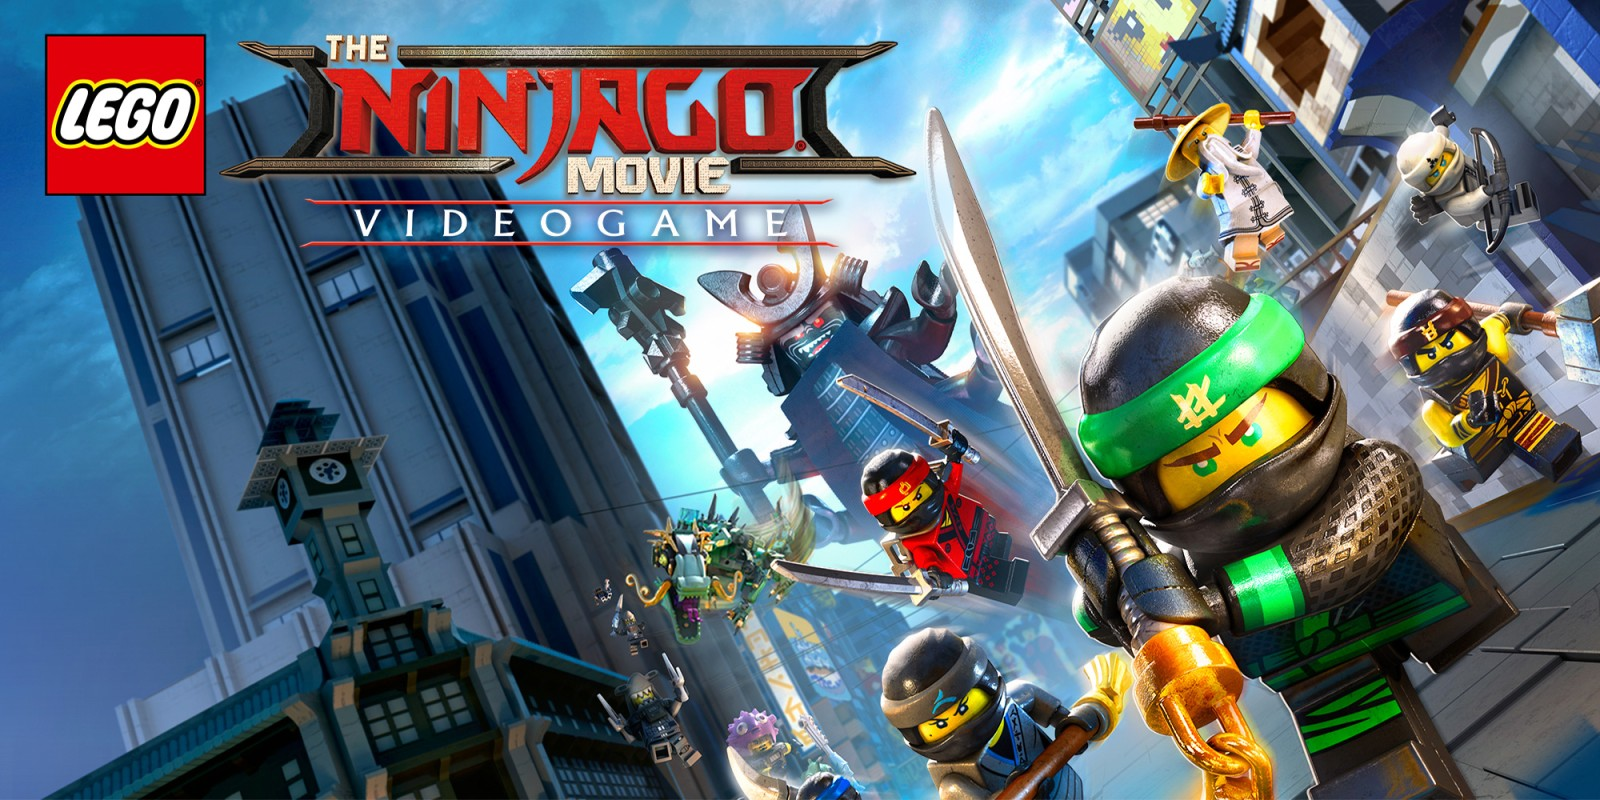 The Lego Ninjago Movie The Lego Ninjago Movie Videogame Nintendo Switch Games